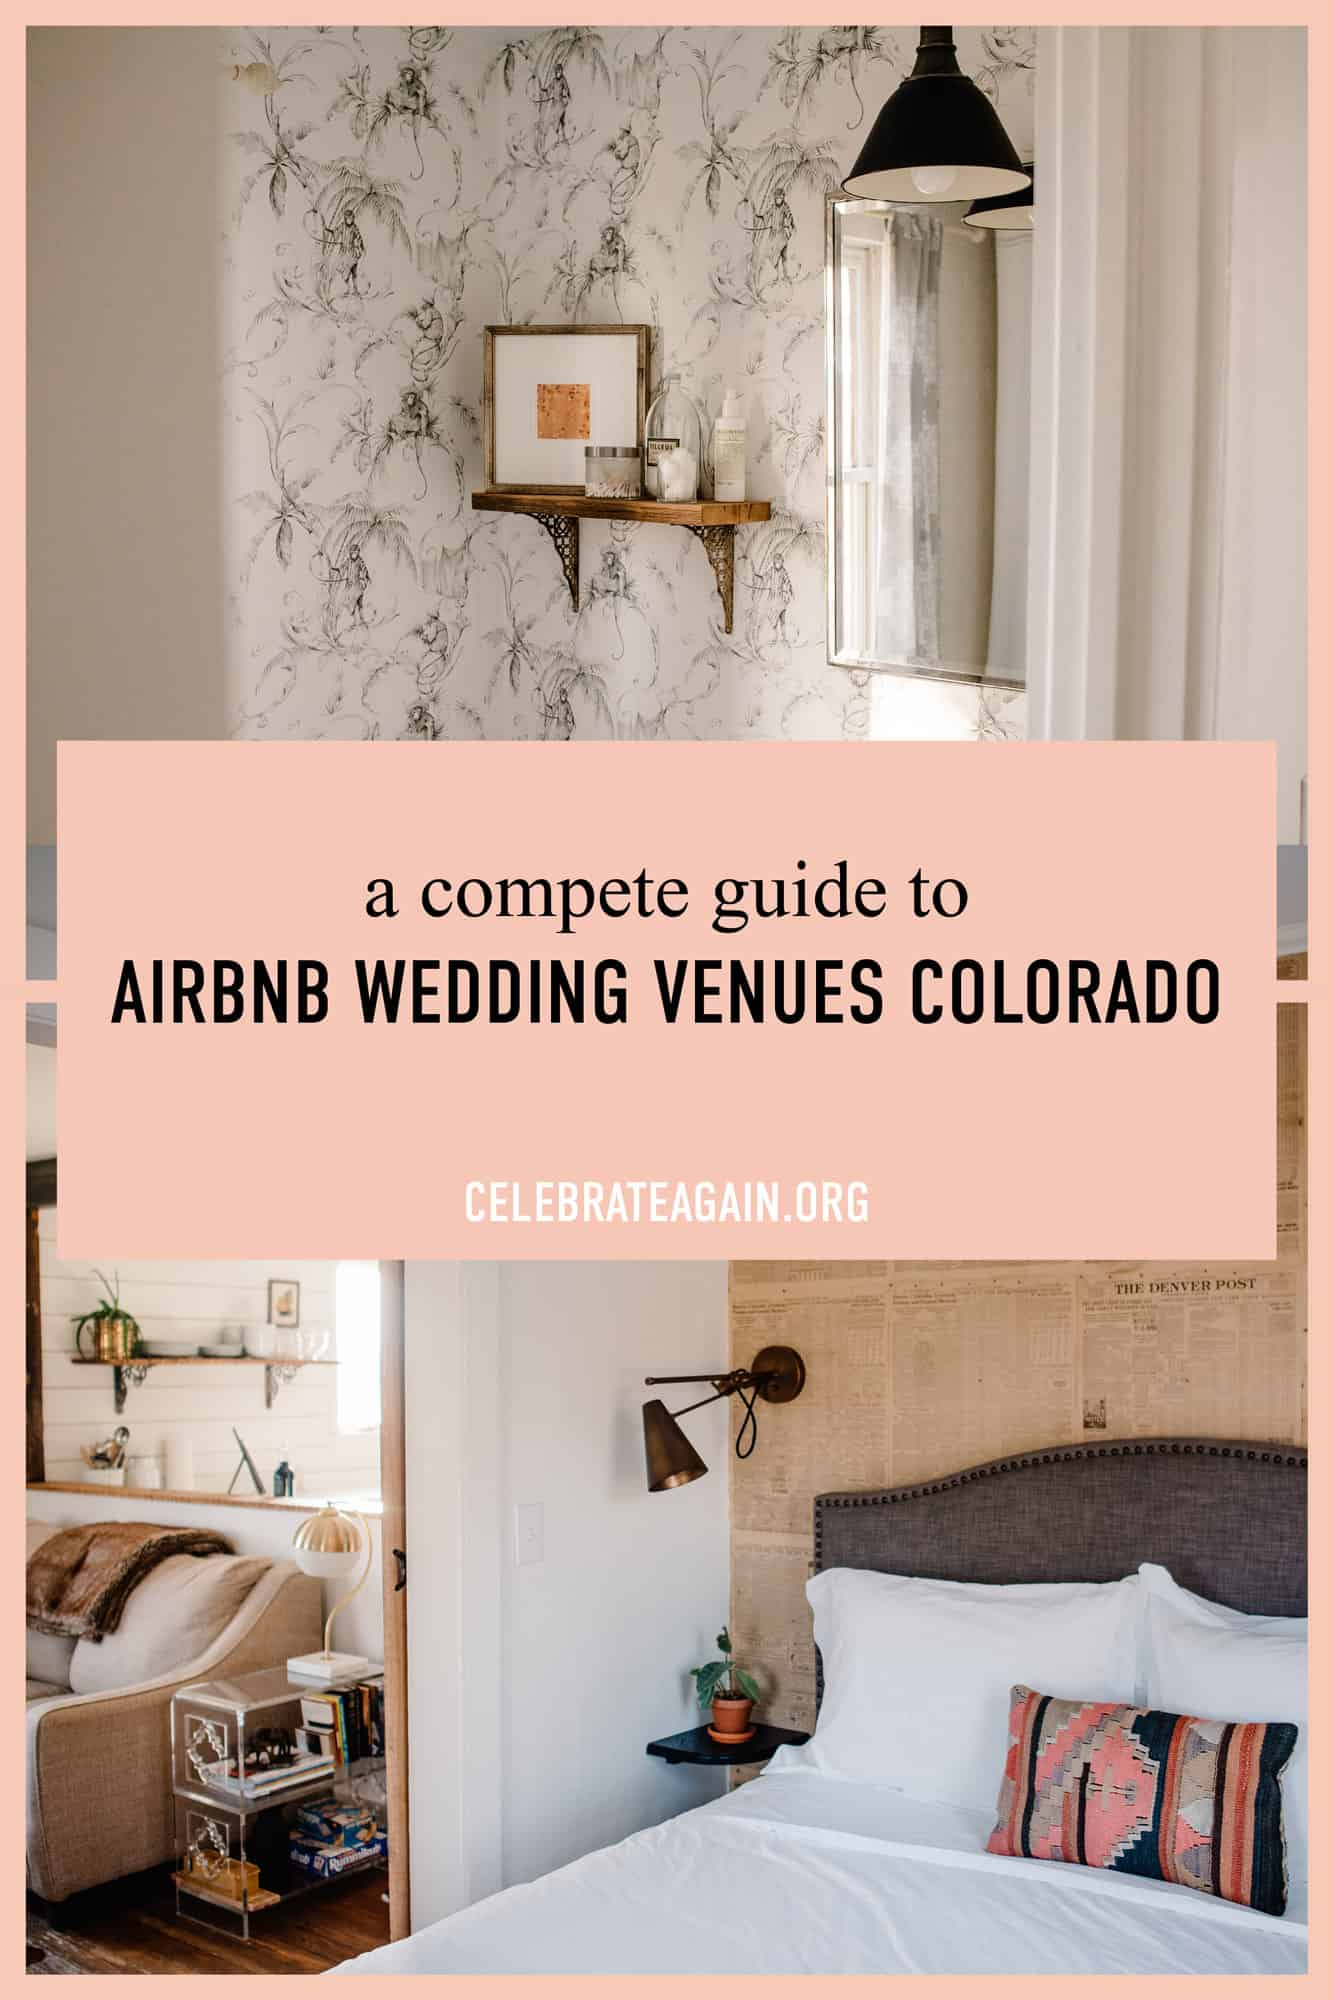 """view of a rental home bathroom and bedroom with the text """" a complete guide to airbnb wedding venues colorado"""""""